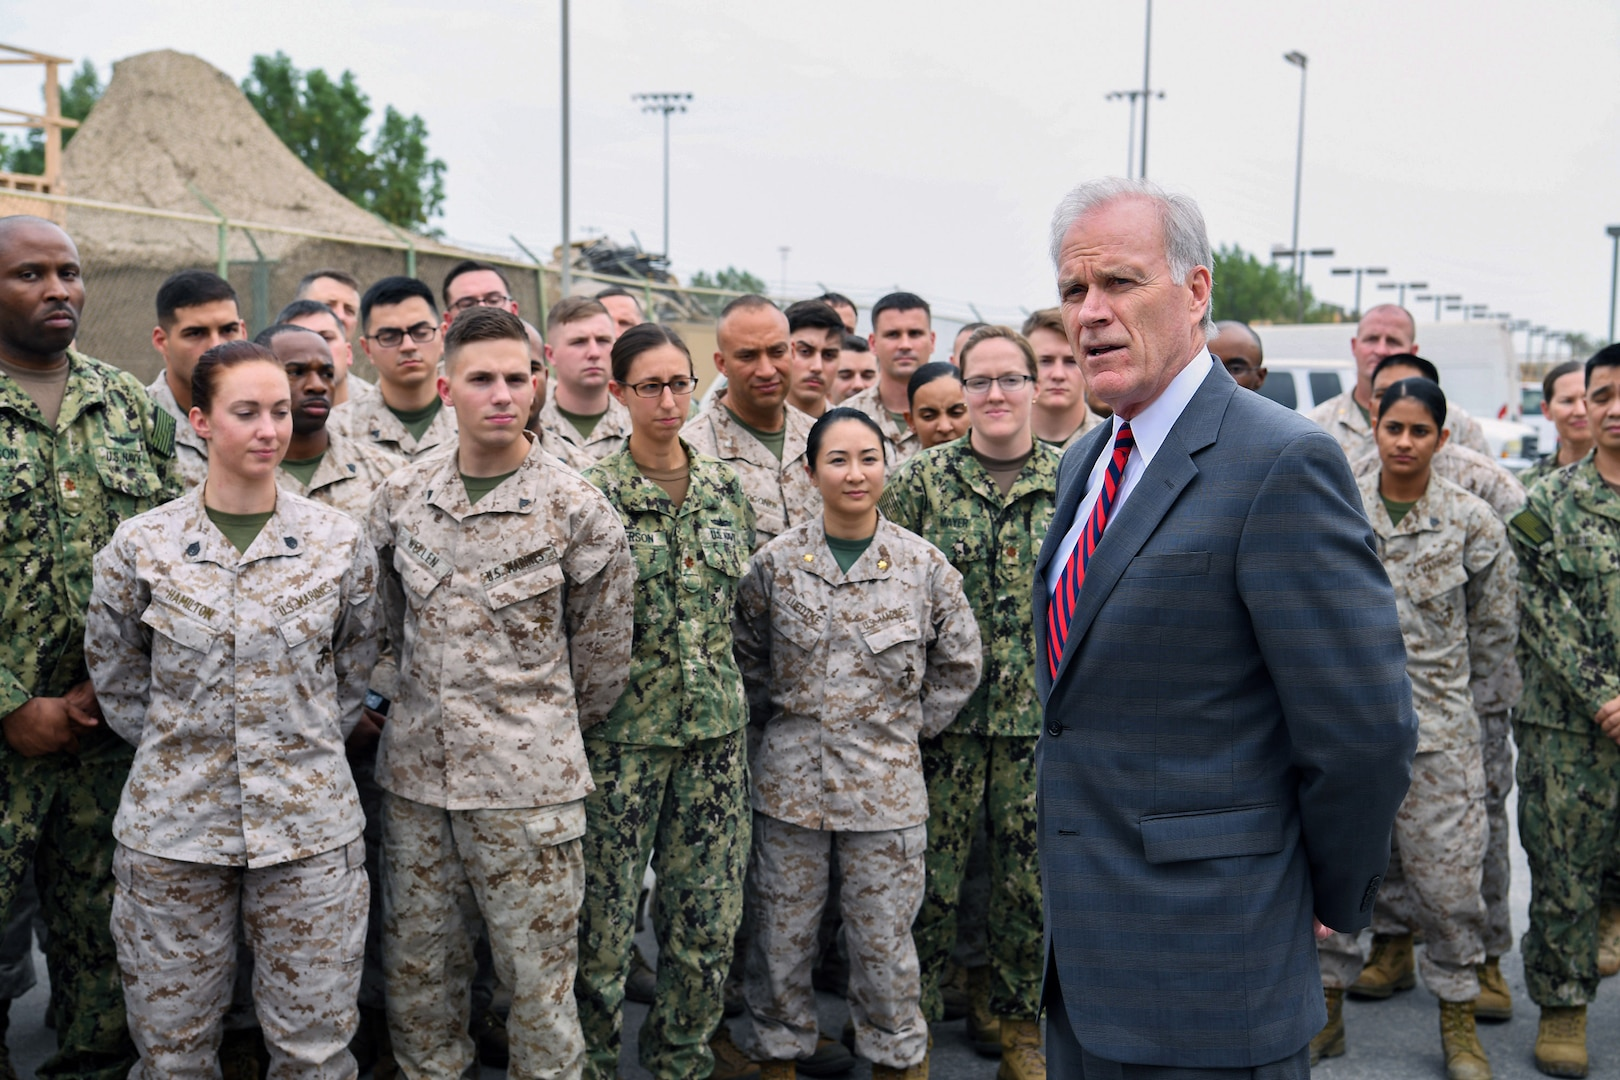 171122-N-GC639-0205 MANAMA, Bahrain (Nov. 22, 2017) Secretary of the Navy Richard V. Spencer speaks to Sailors and Marines as part of a visit to the 5th Fleet Area of Operations.  U.S. 5th Fleet conducts maritime operations to deter and counter regional threats, defeat violent extremism and strengthen partner nations' maritime capabilities in order to preserve the free flow of commerce and promote a secure maritime environment in the U.S. Central Command area of responsibility. (U.S. Navy photo by Mass Communication Specialist 2nd Class McLearnon/Released)